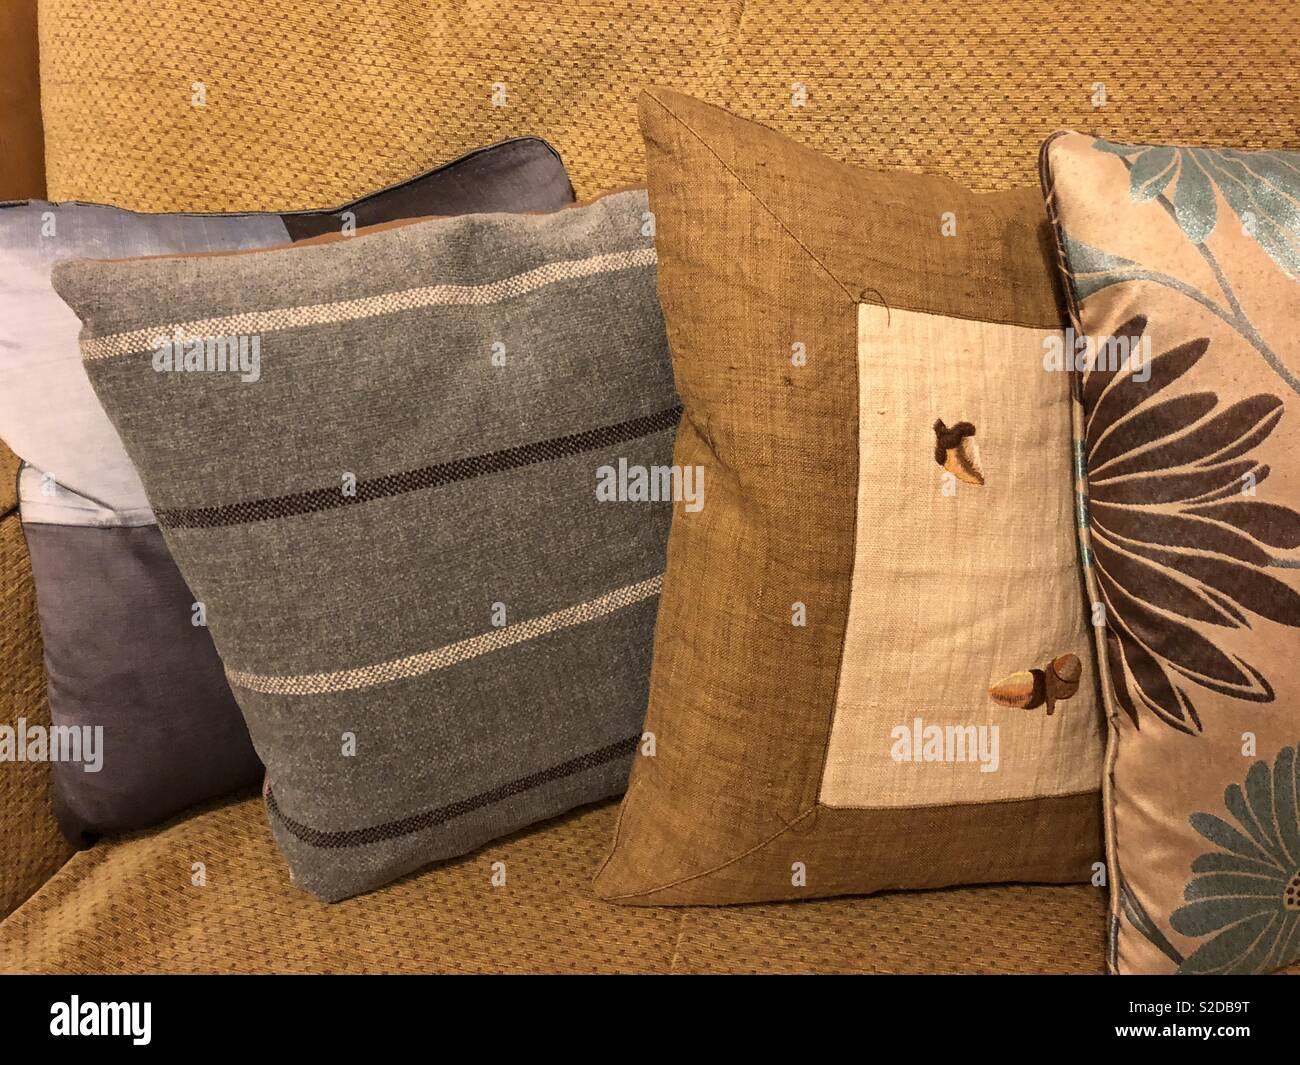 Sofa cushions - Stock Image